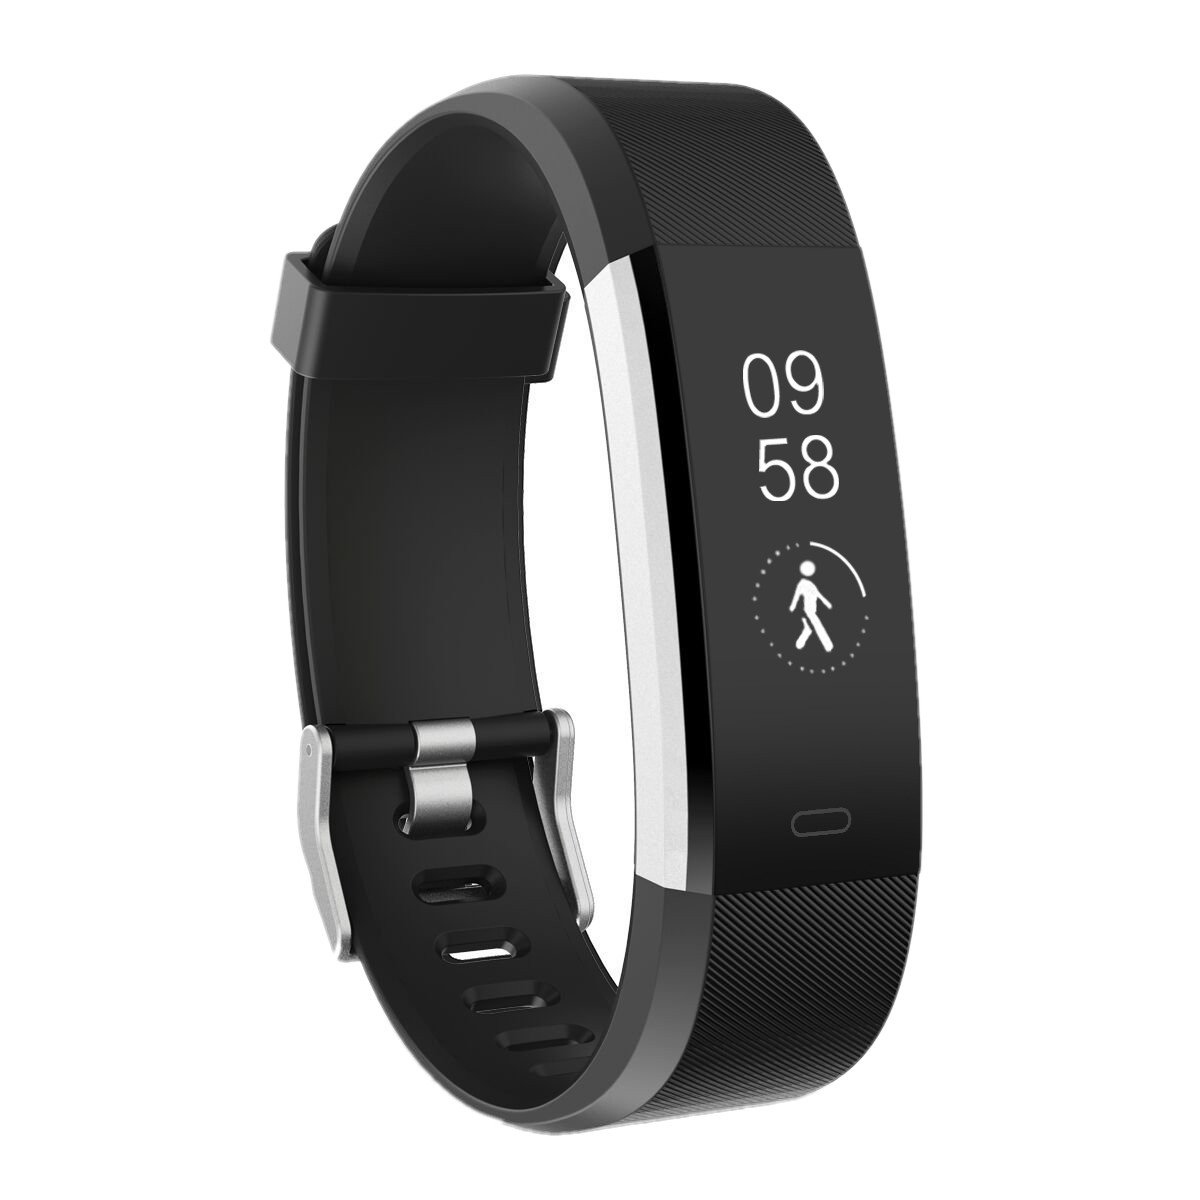 IP67 Fitness Tracker Watch, Waterproof Activity Tracker with Pedometer Heart Rate and Sleep Monitor,Step Calorie Counter Wristband Smart Watch for Android and iOS (Black)